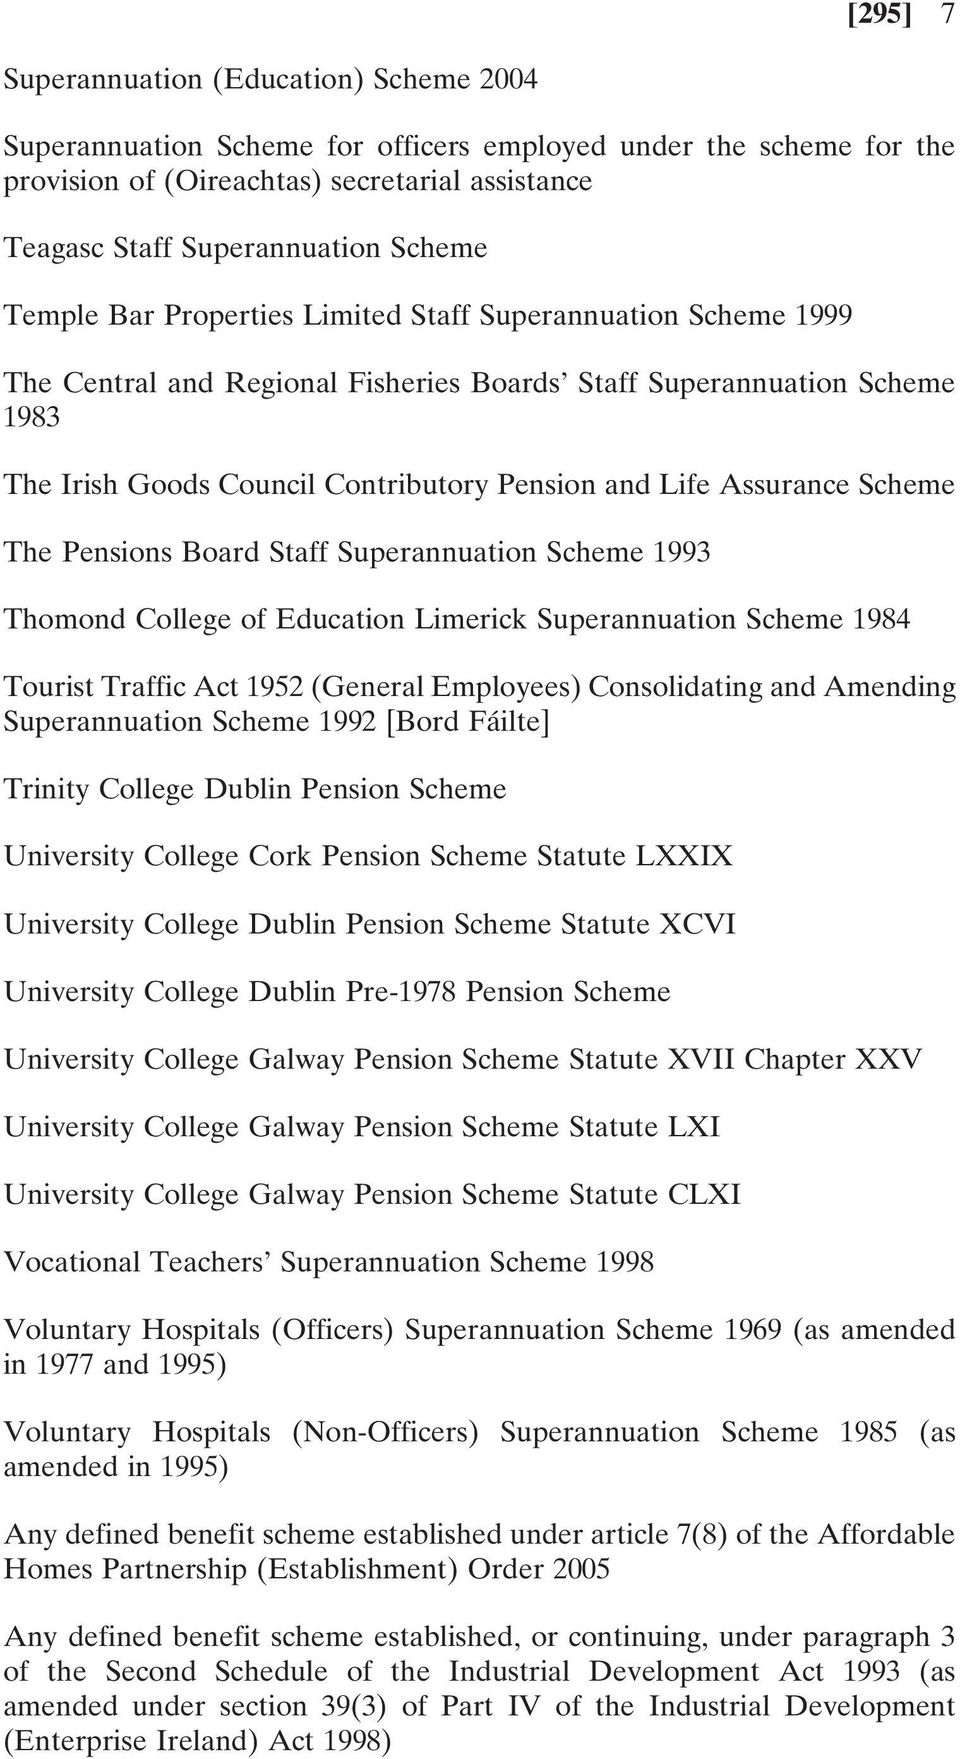 Assurance Scheme The Pensions Board Staff Superannuation Scheme 1993 Thomond College of Education Limerick Superannuation Scheme 1984 Tourist Traffic Act 1952 (General Employees) Consolidating and